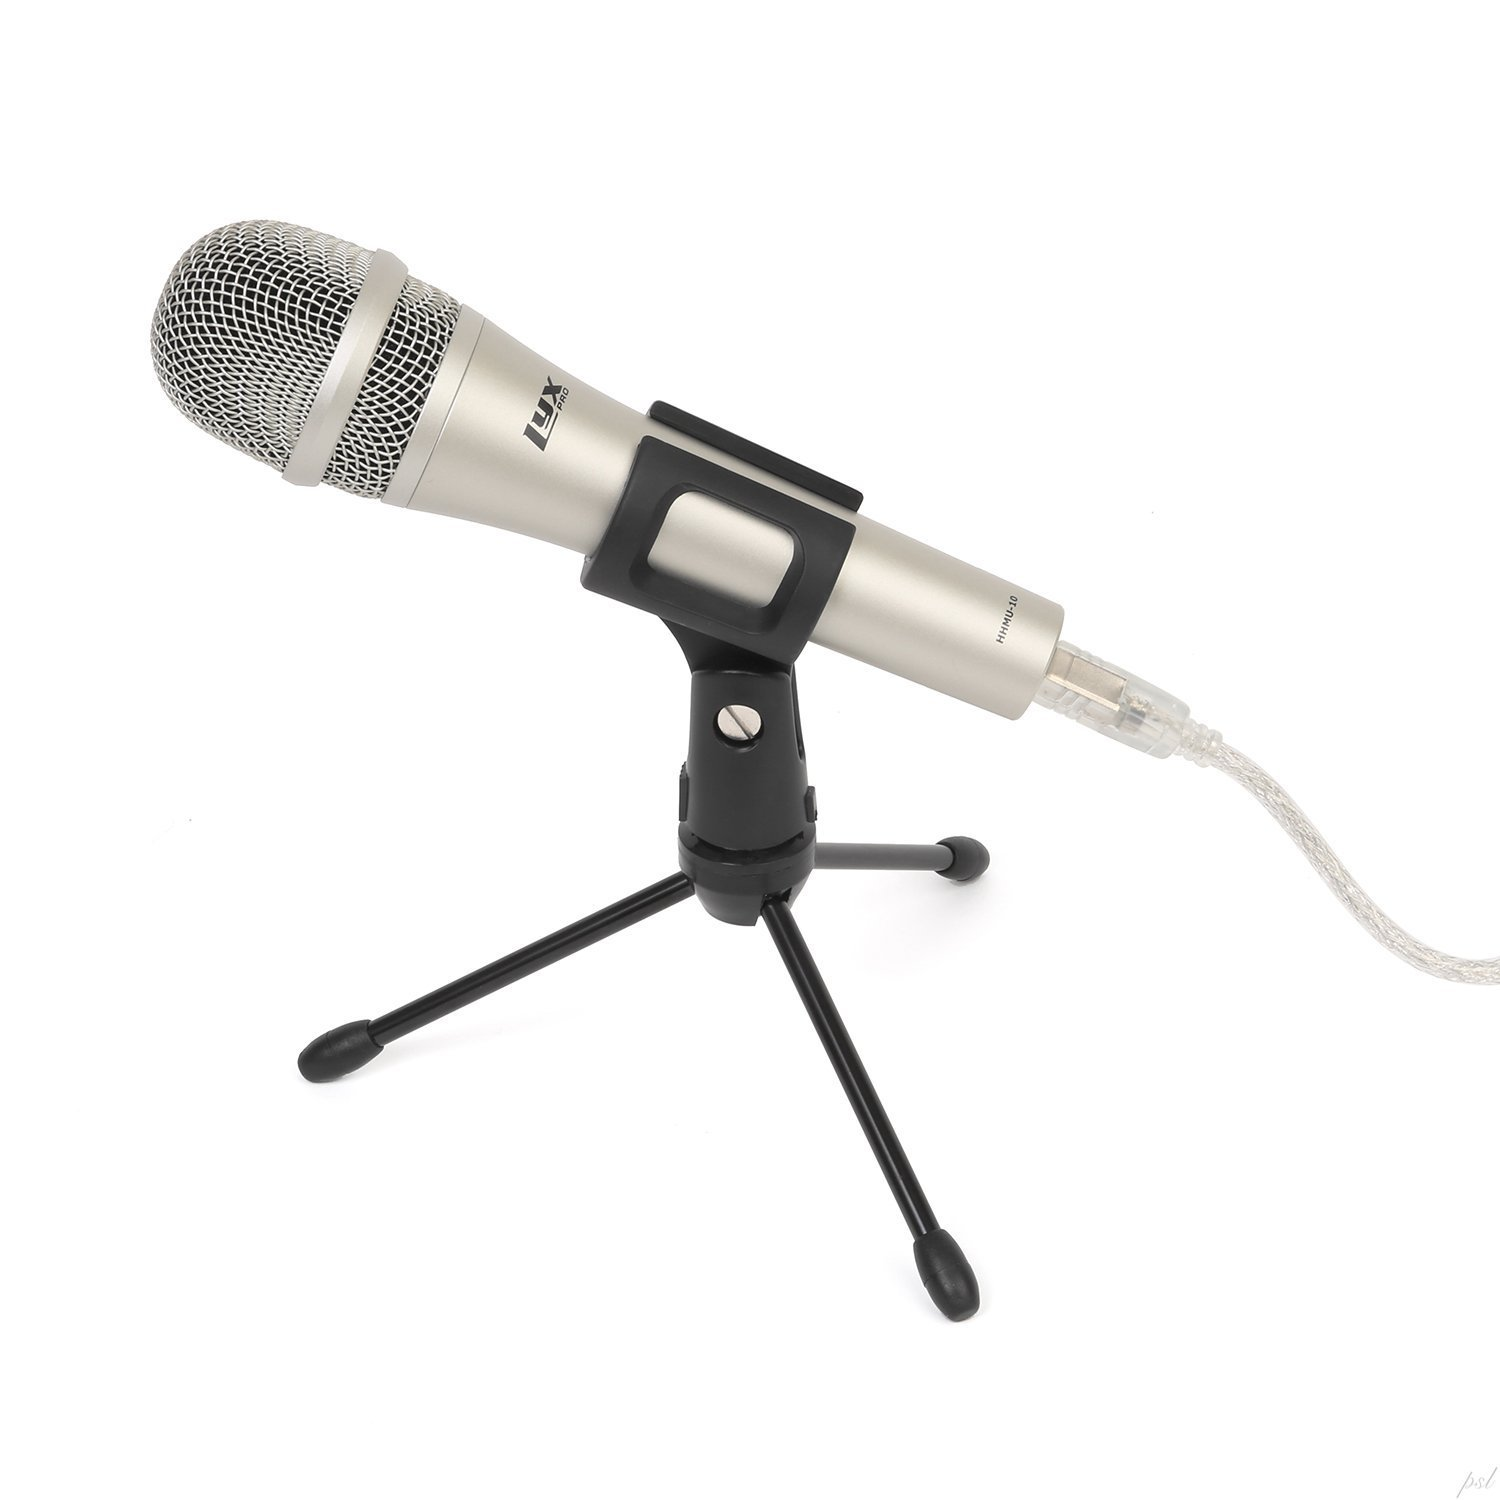 lyxpro hhmu 10 cardioid dynamic usb microphone for home recording voice over podcasting. Black Bedroom Furniture Sets. Home Design Ideas